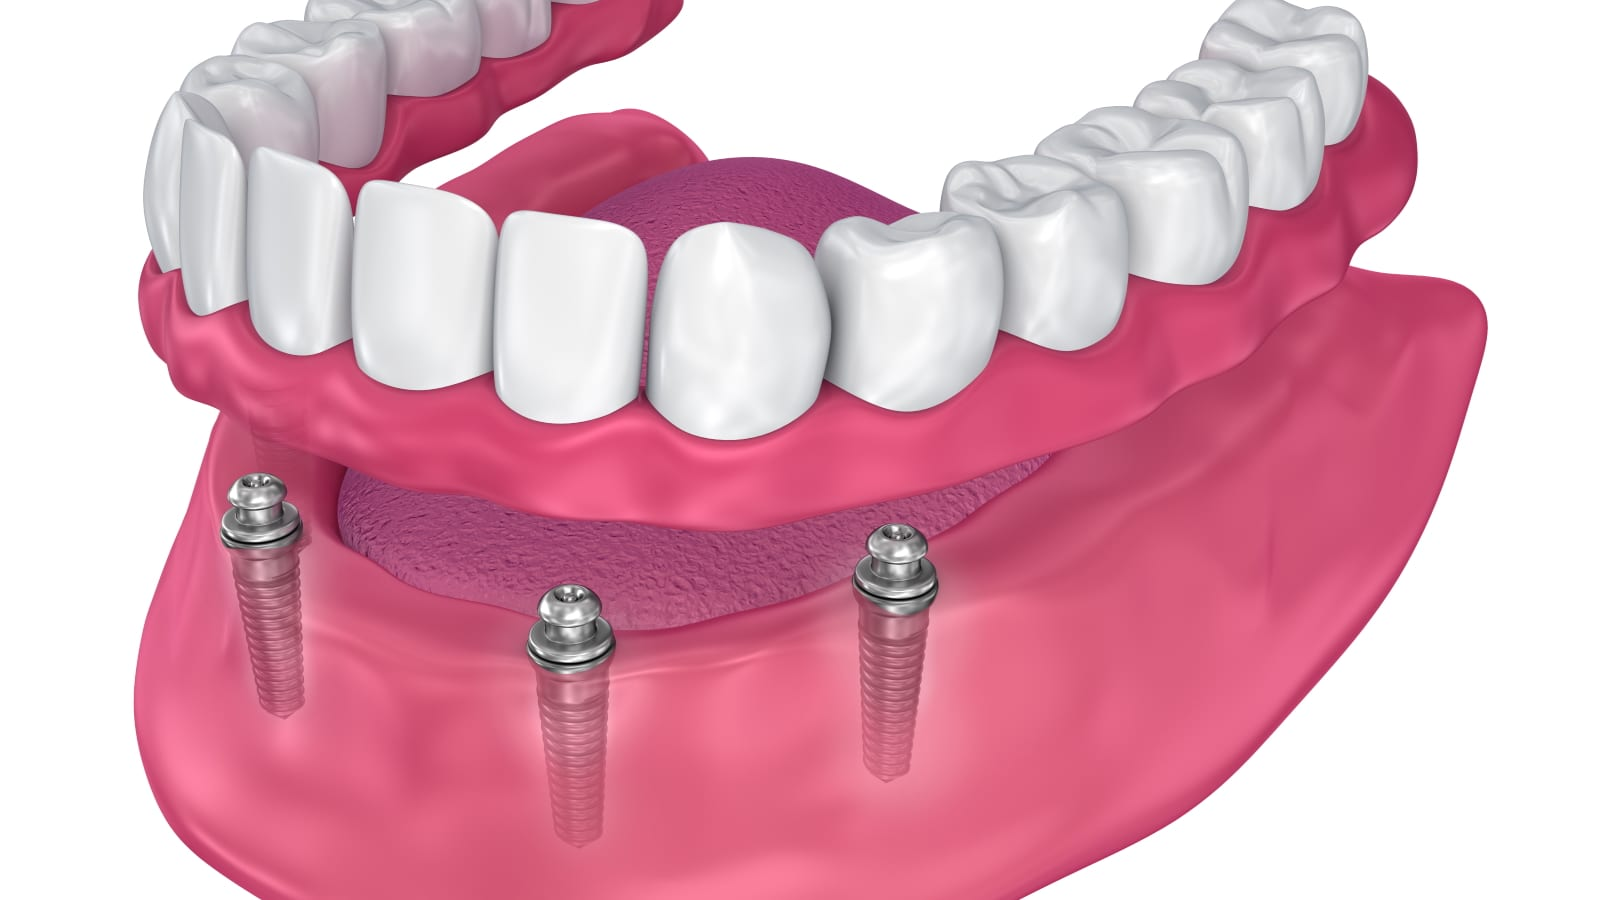 Rendering of Ball Attachment Dentures